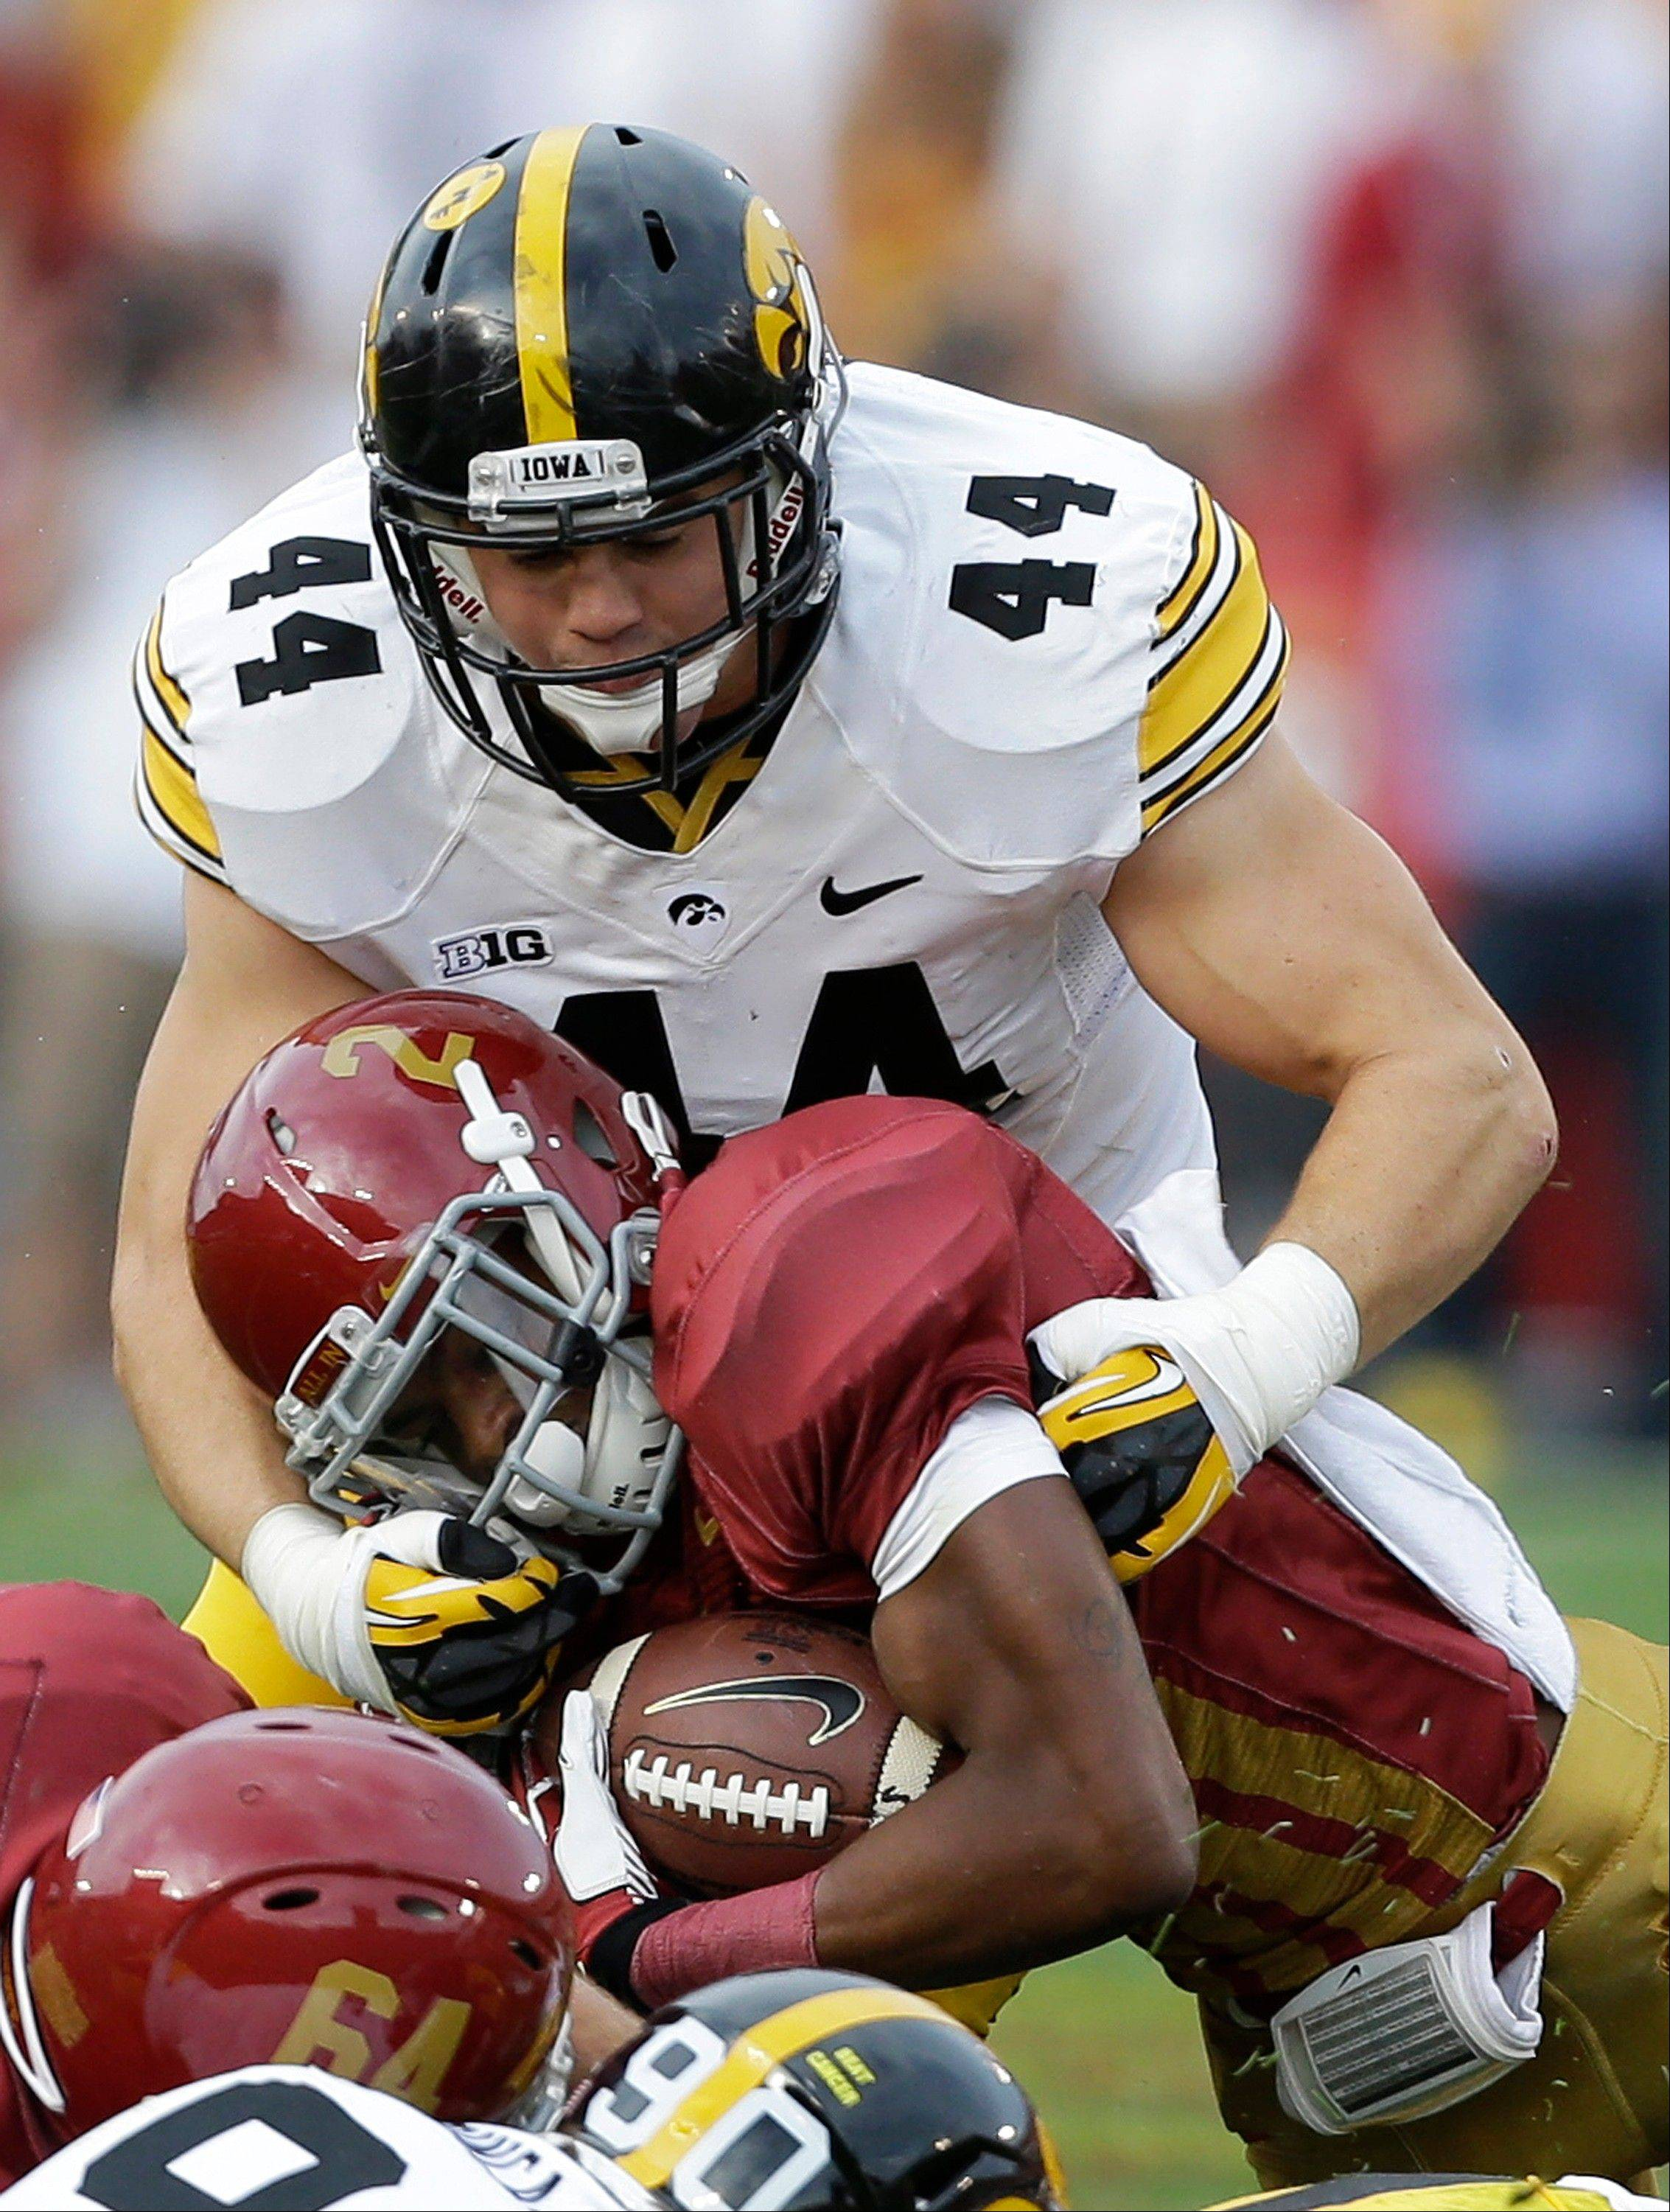 Iowa linebacker James Morris tackles Iowa State running back Aaron Wimberly during the first half of Iowa's win Saturday in Ames.